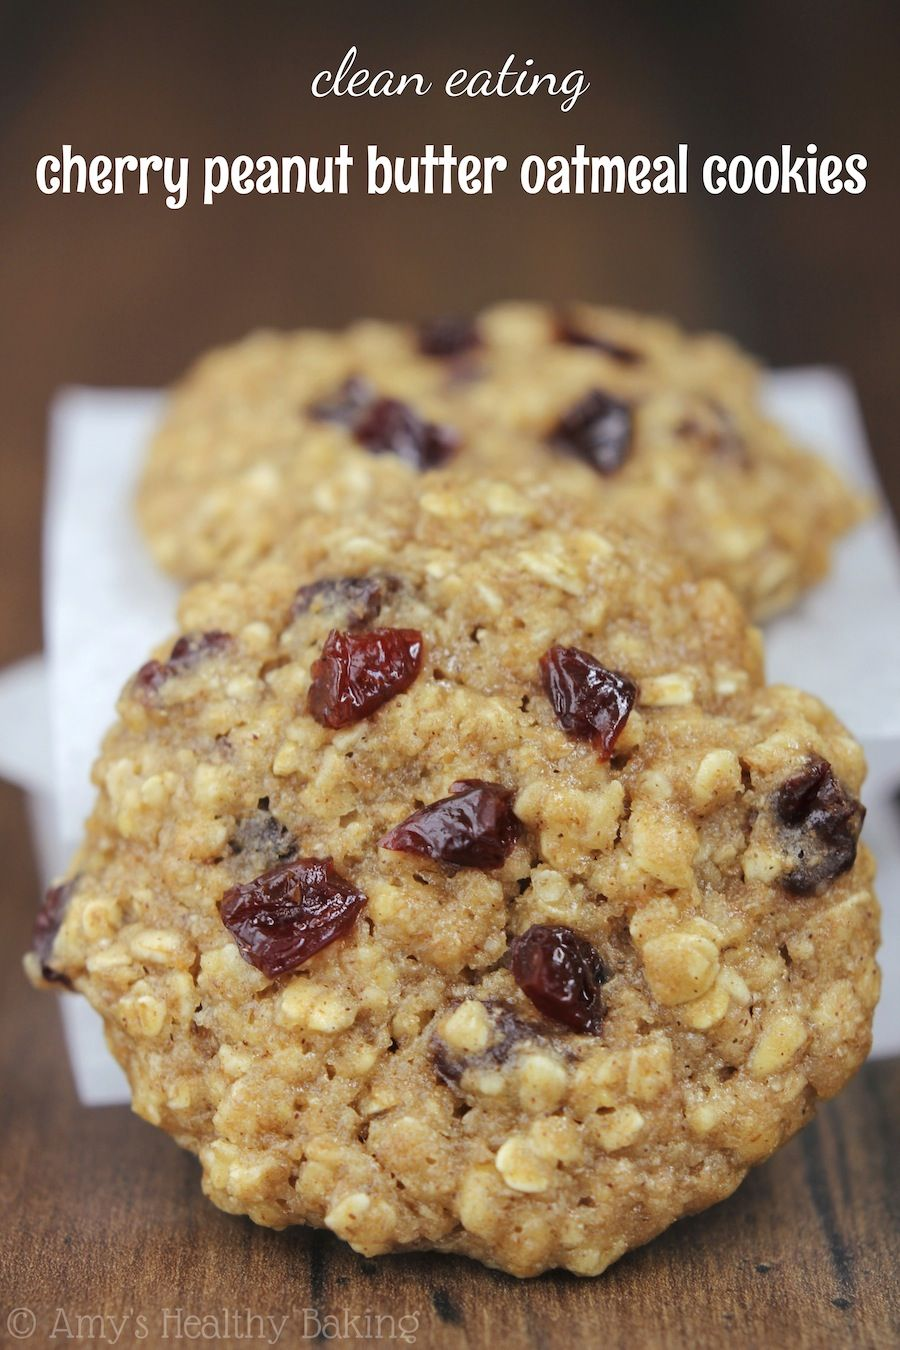 PB&J turned into clean-eating oatmeal cookies! This skinny recipe stays soft & chewy for an entire week. Nobody can tell they're healthy!